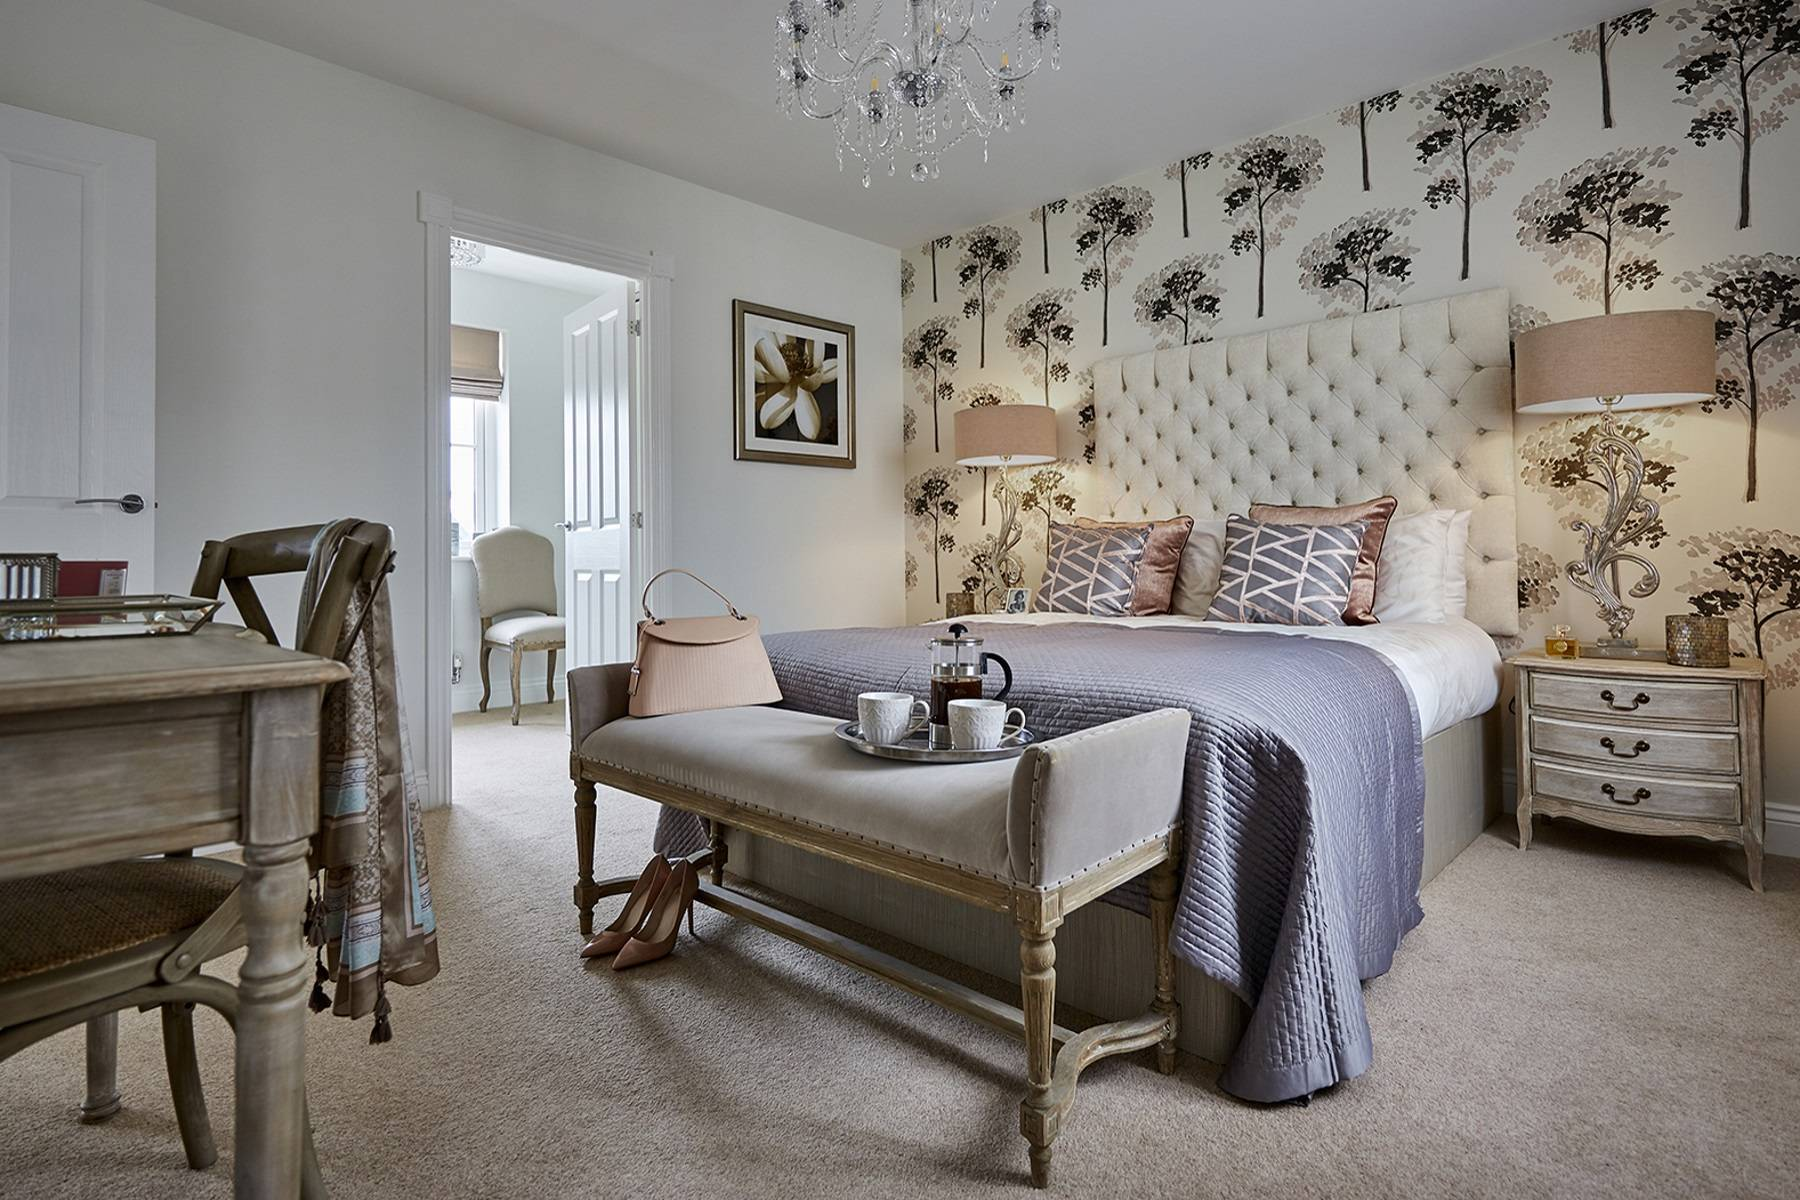 TW Exeter - Sherford - Cherry Show home bedroom